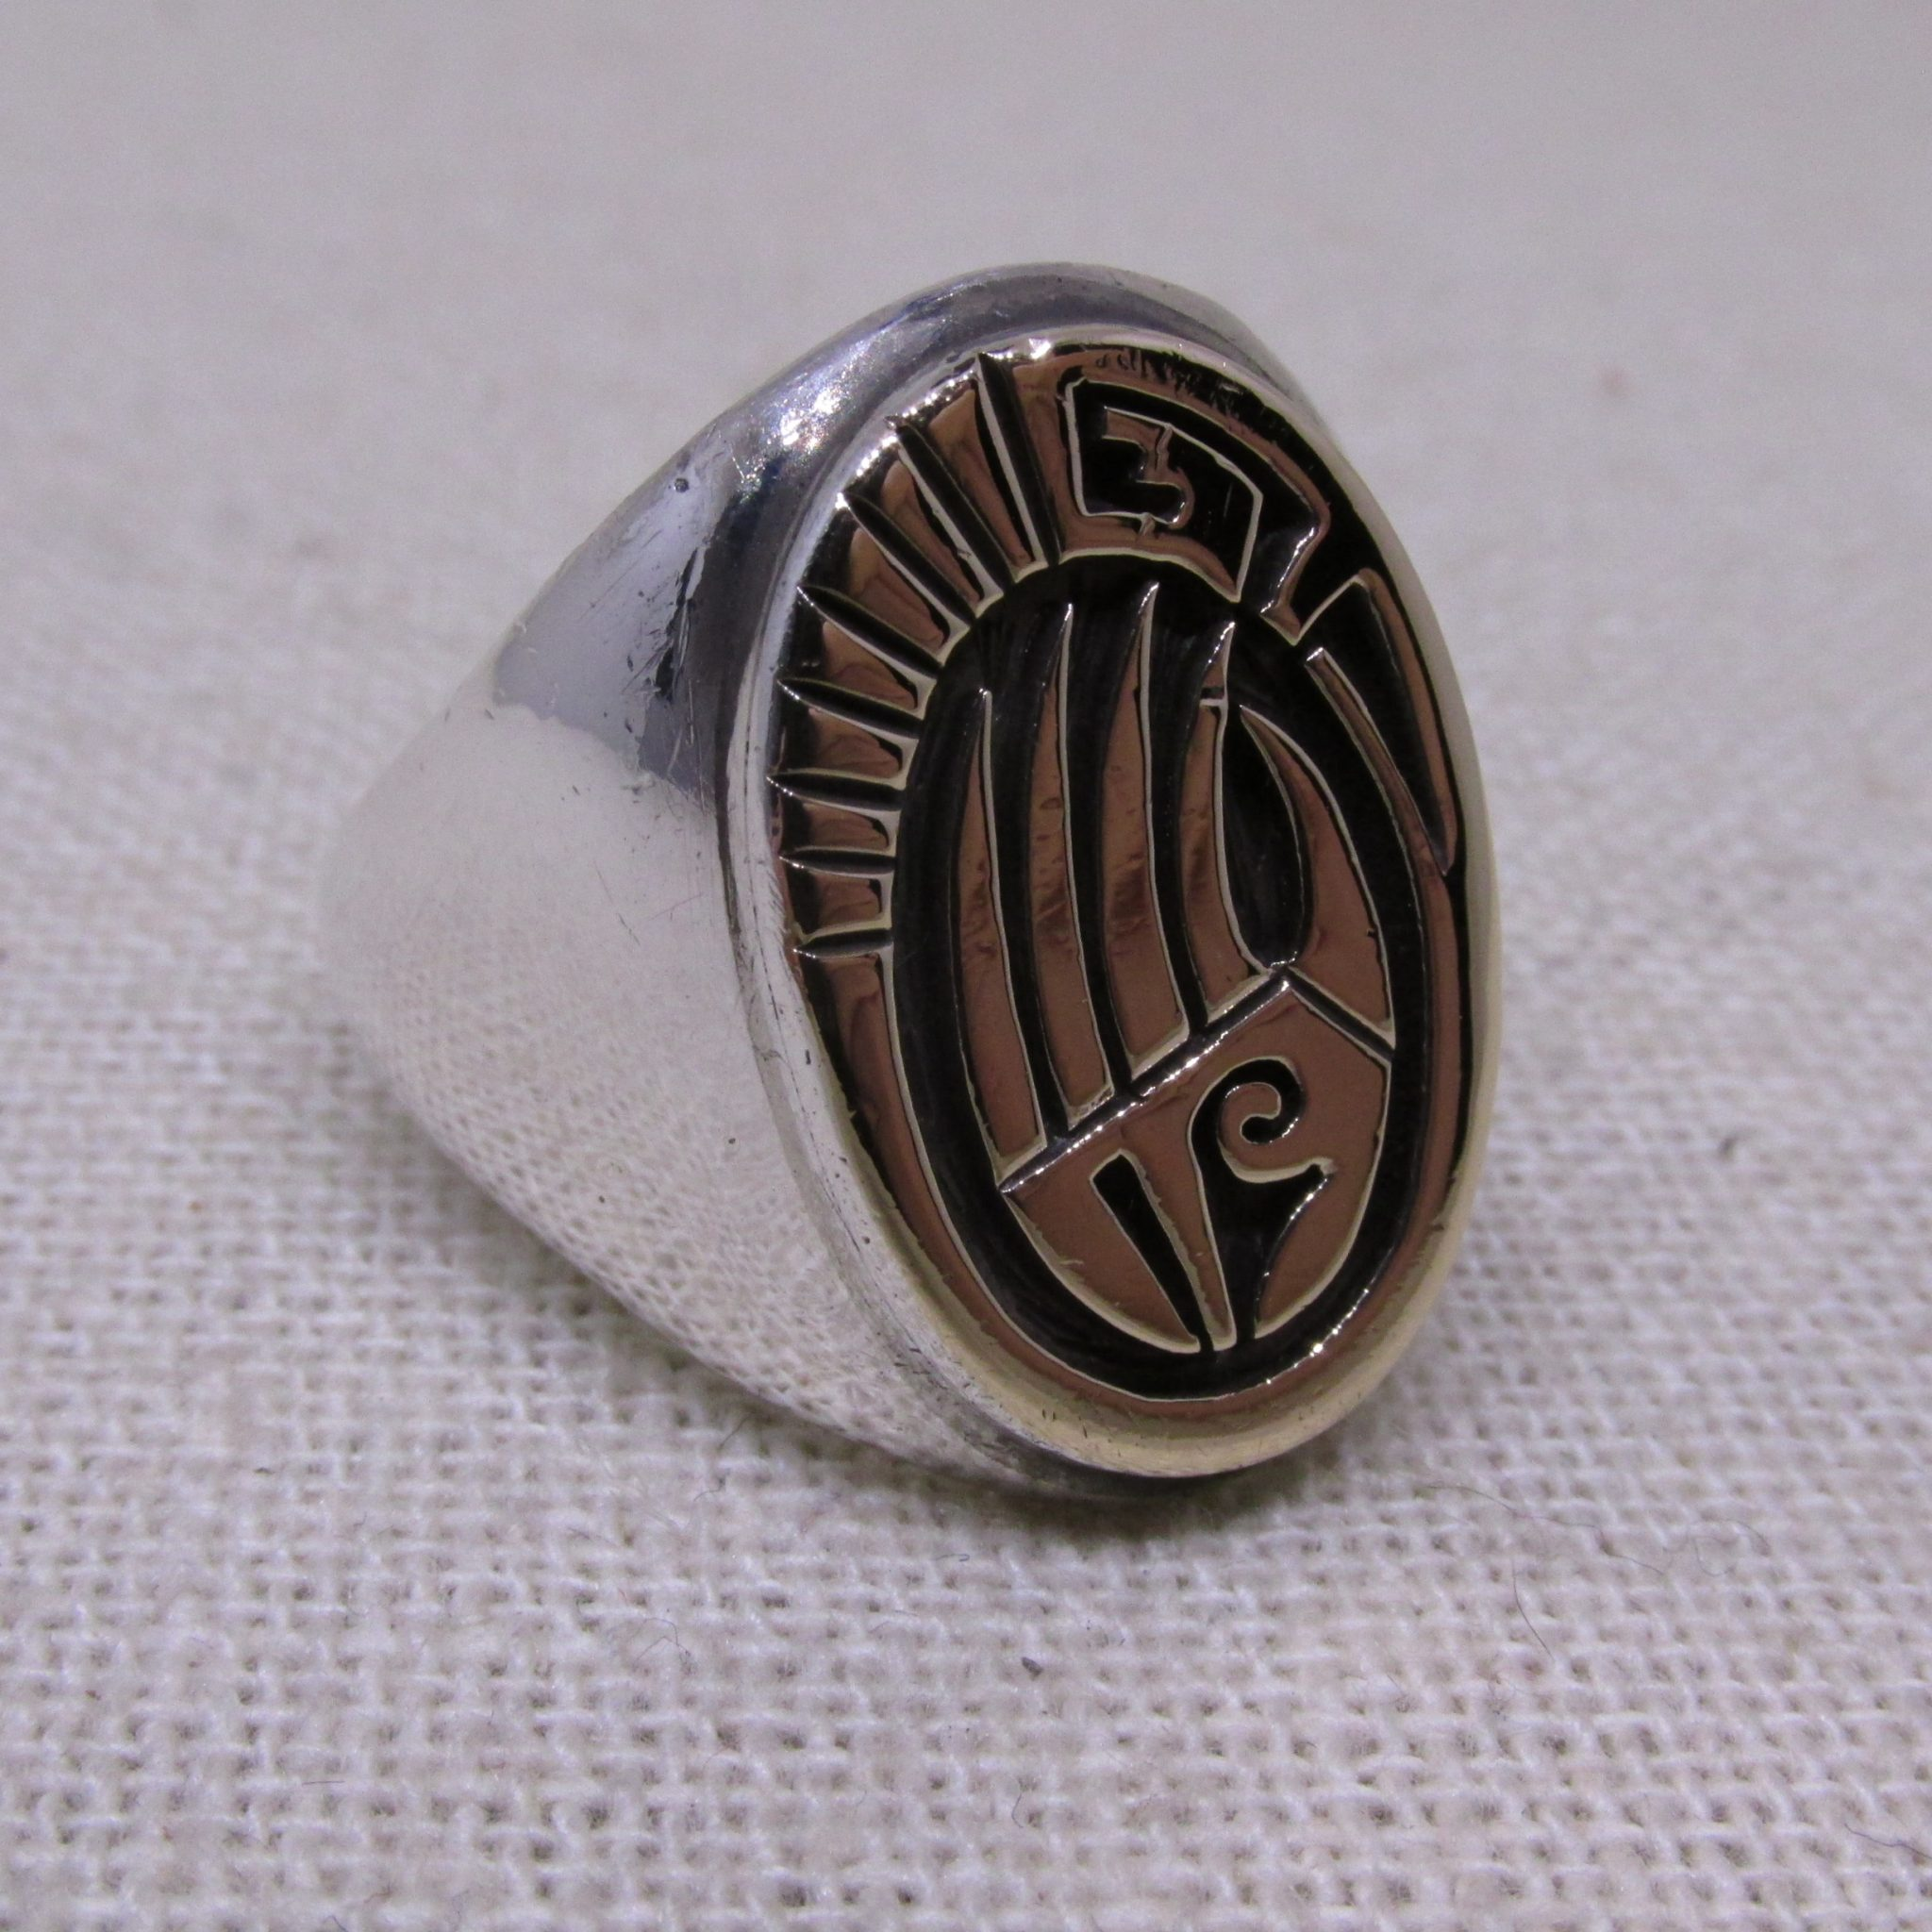 Calvin Peterson Navajo (Dine') Bear Claw Sterling Silver and 14kt. Gold Ring